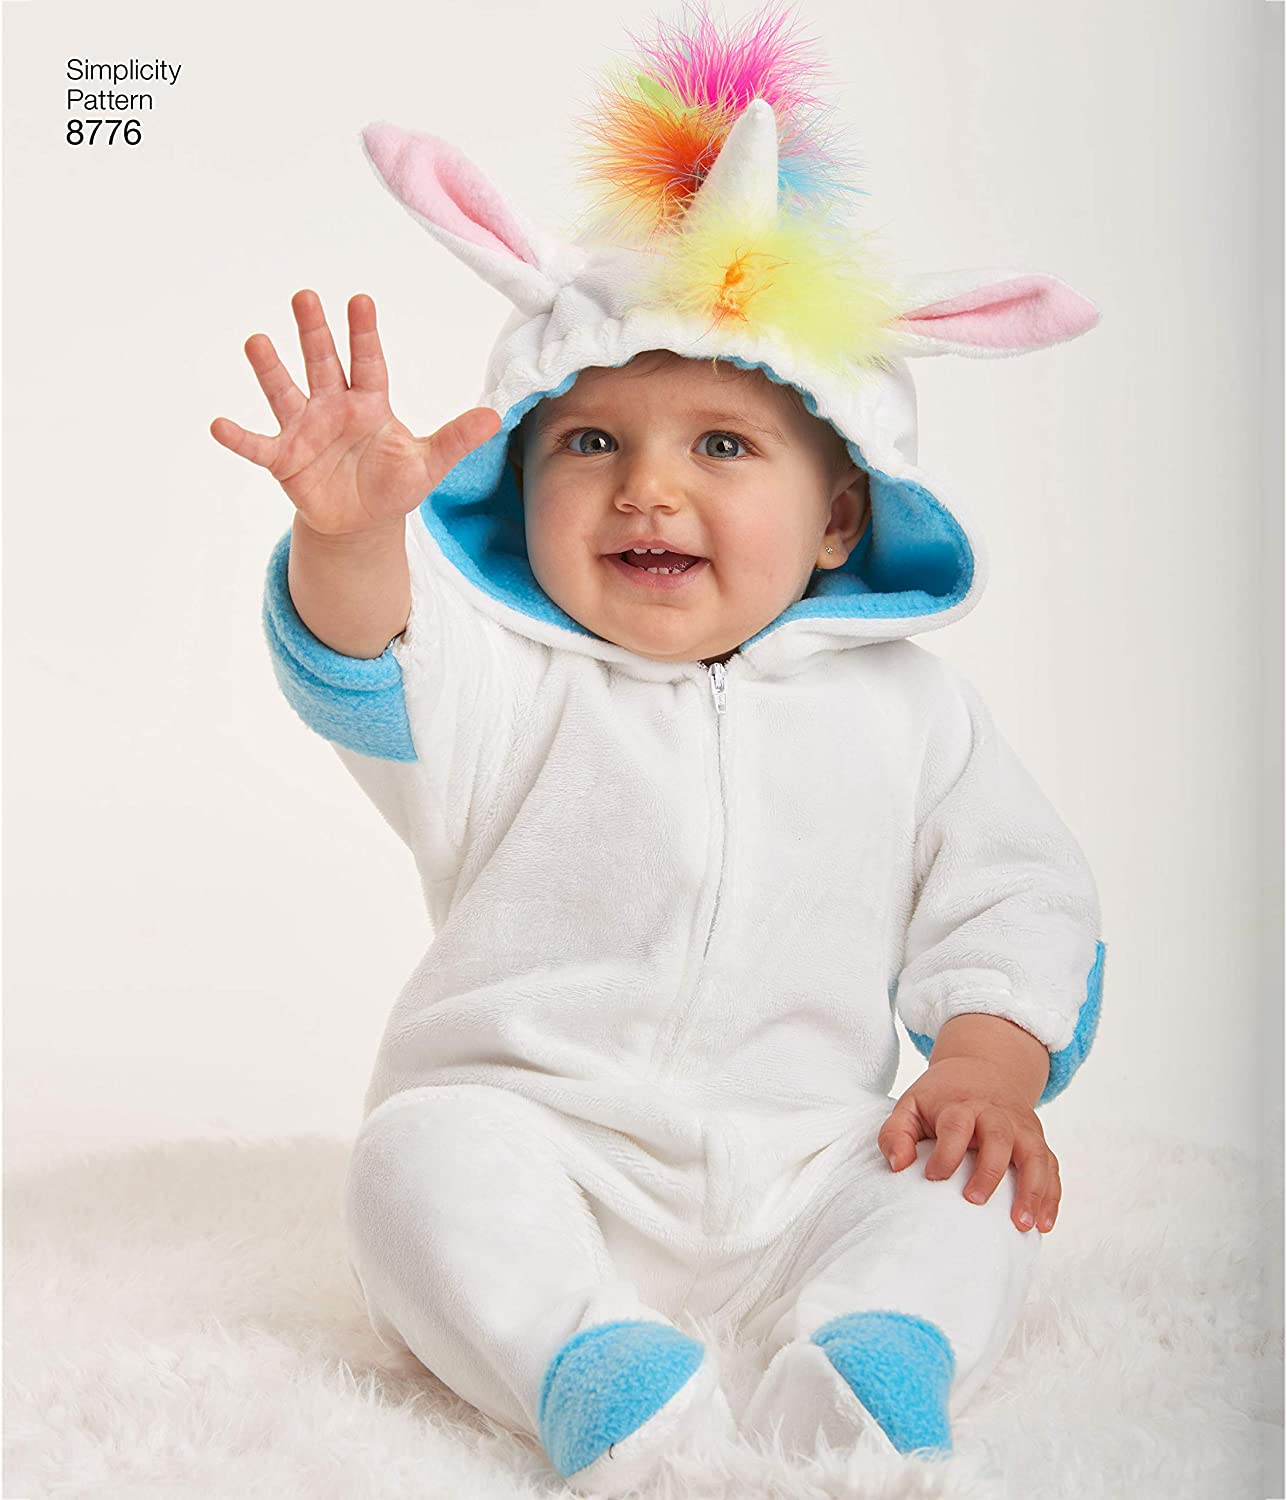 Sizes XS-L Simplicity 8776 Animal Onesie Baby Costume Sewing Pattern 5 Styles